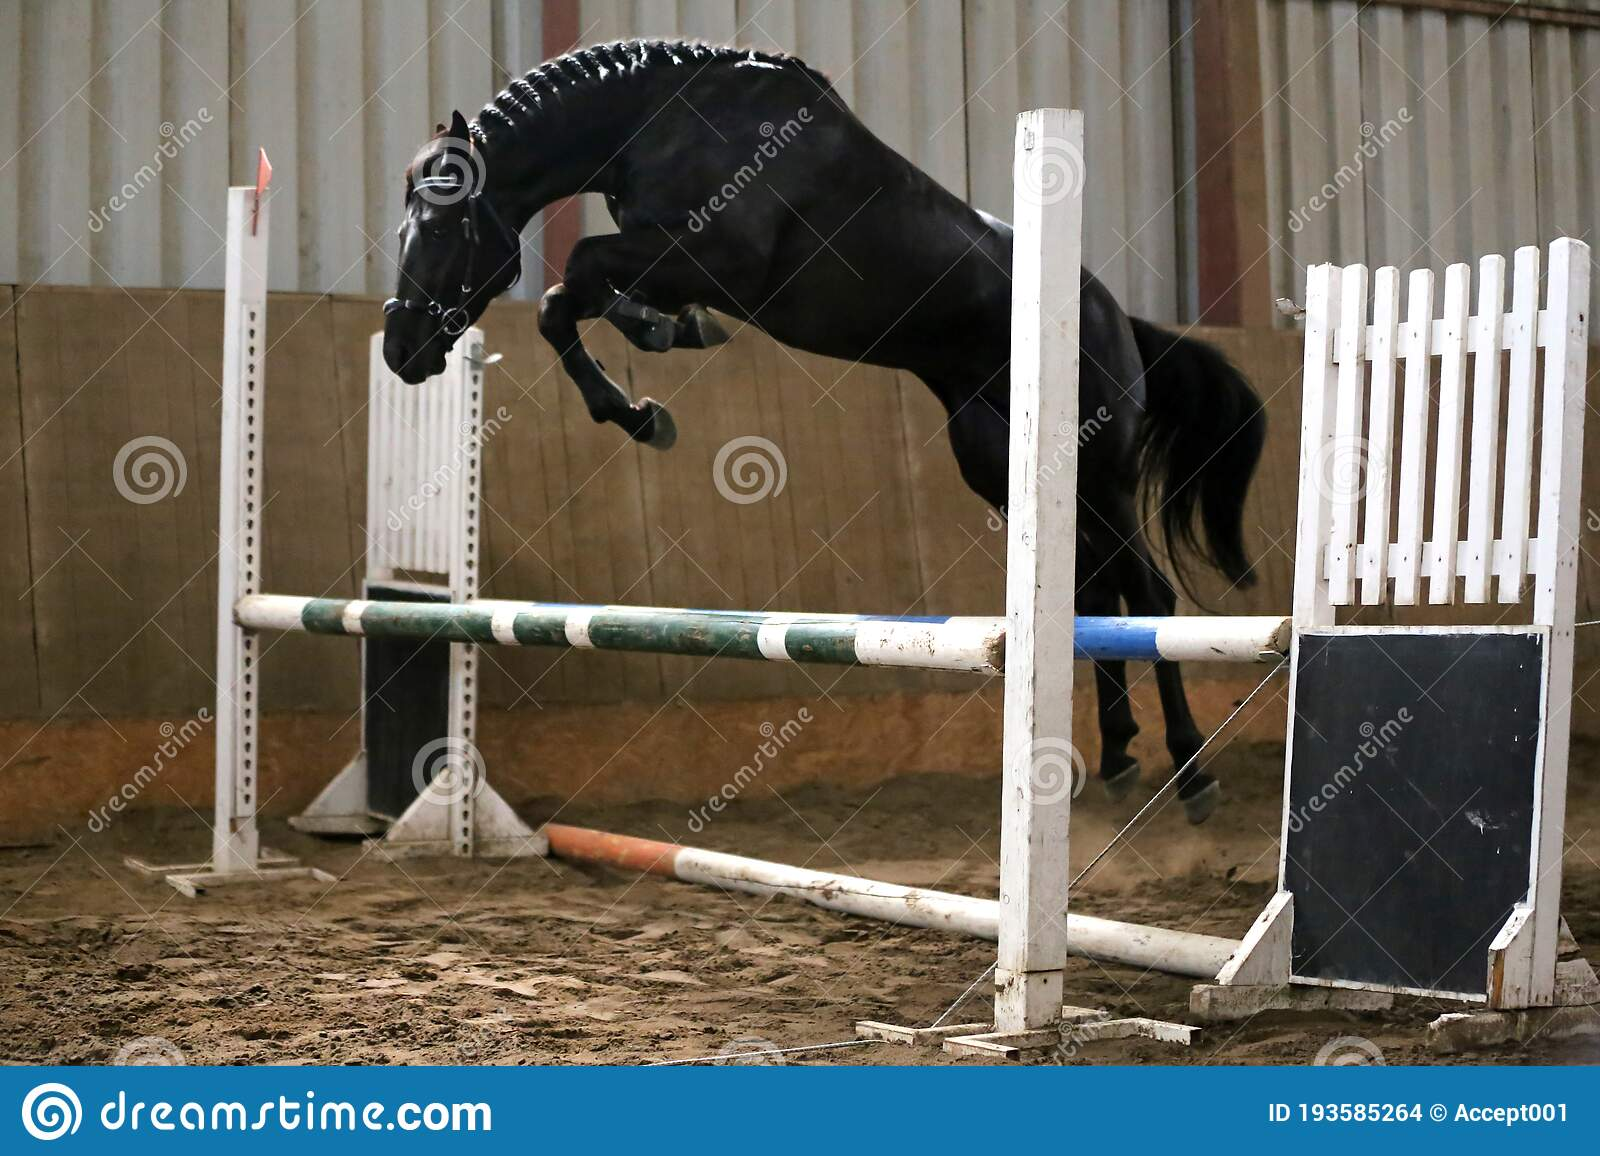 Beautiful Young Purebred Horse Jump Over Barrier Free Jumping In The Riding Hall Stock Photo Image Of Harness Freedom 193585264